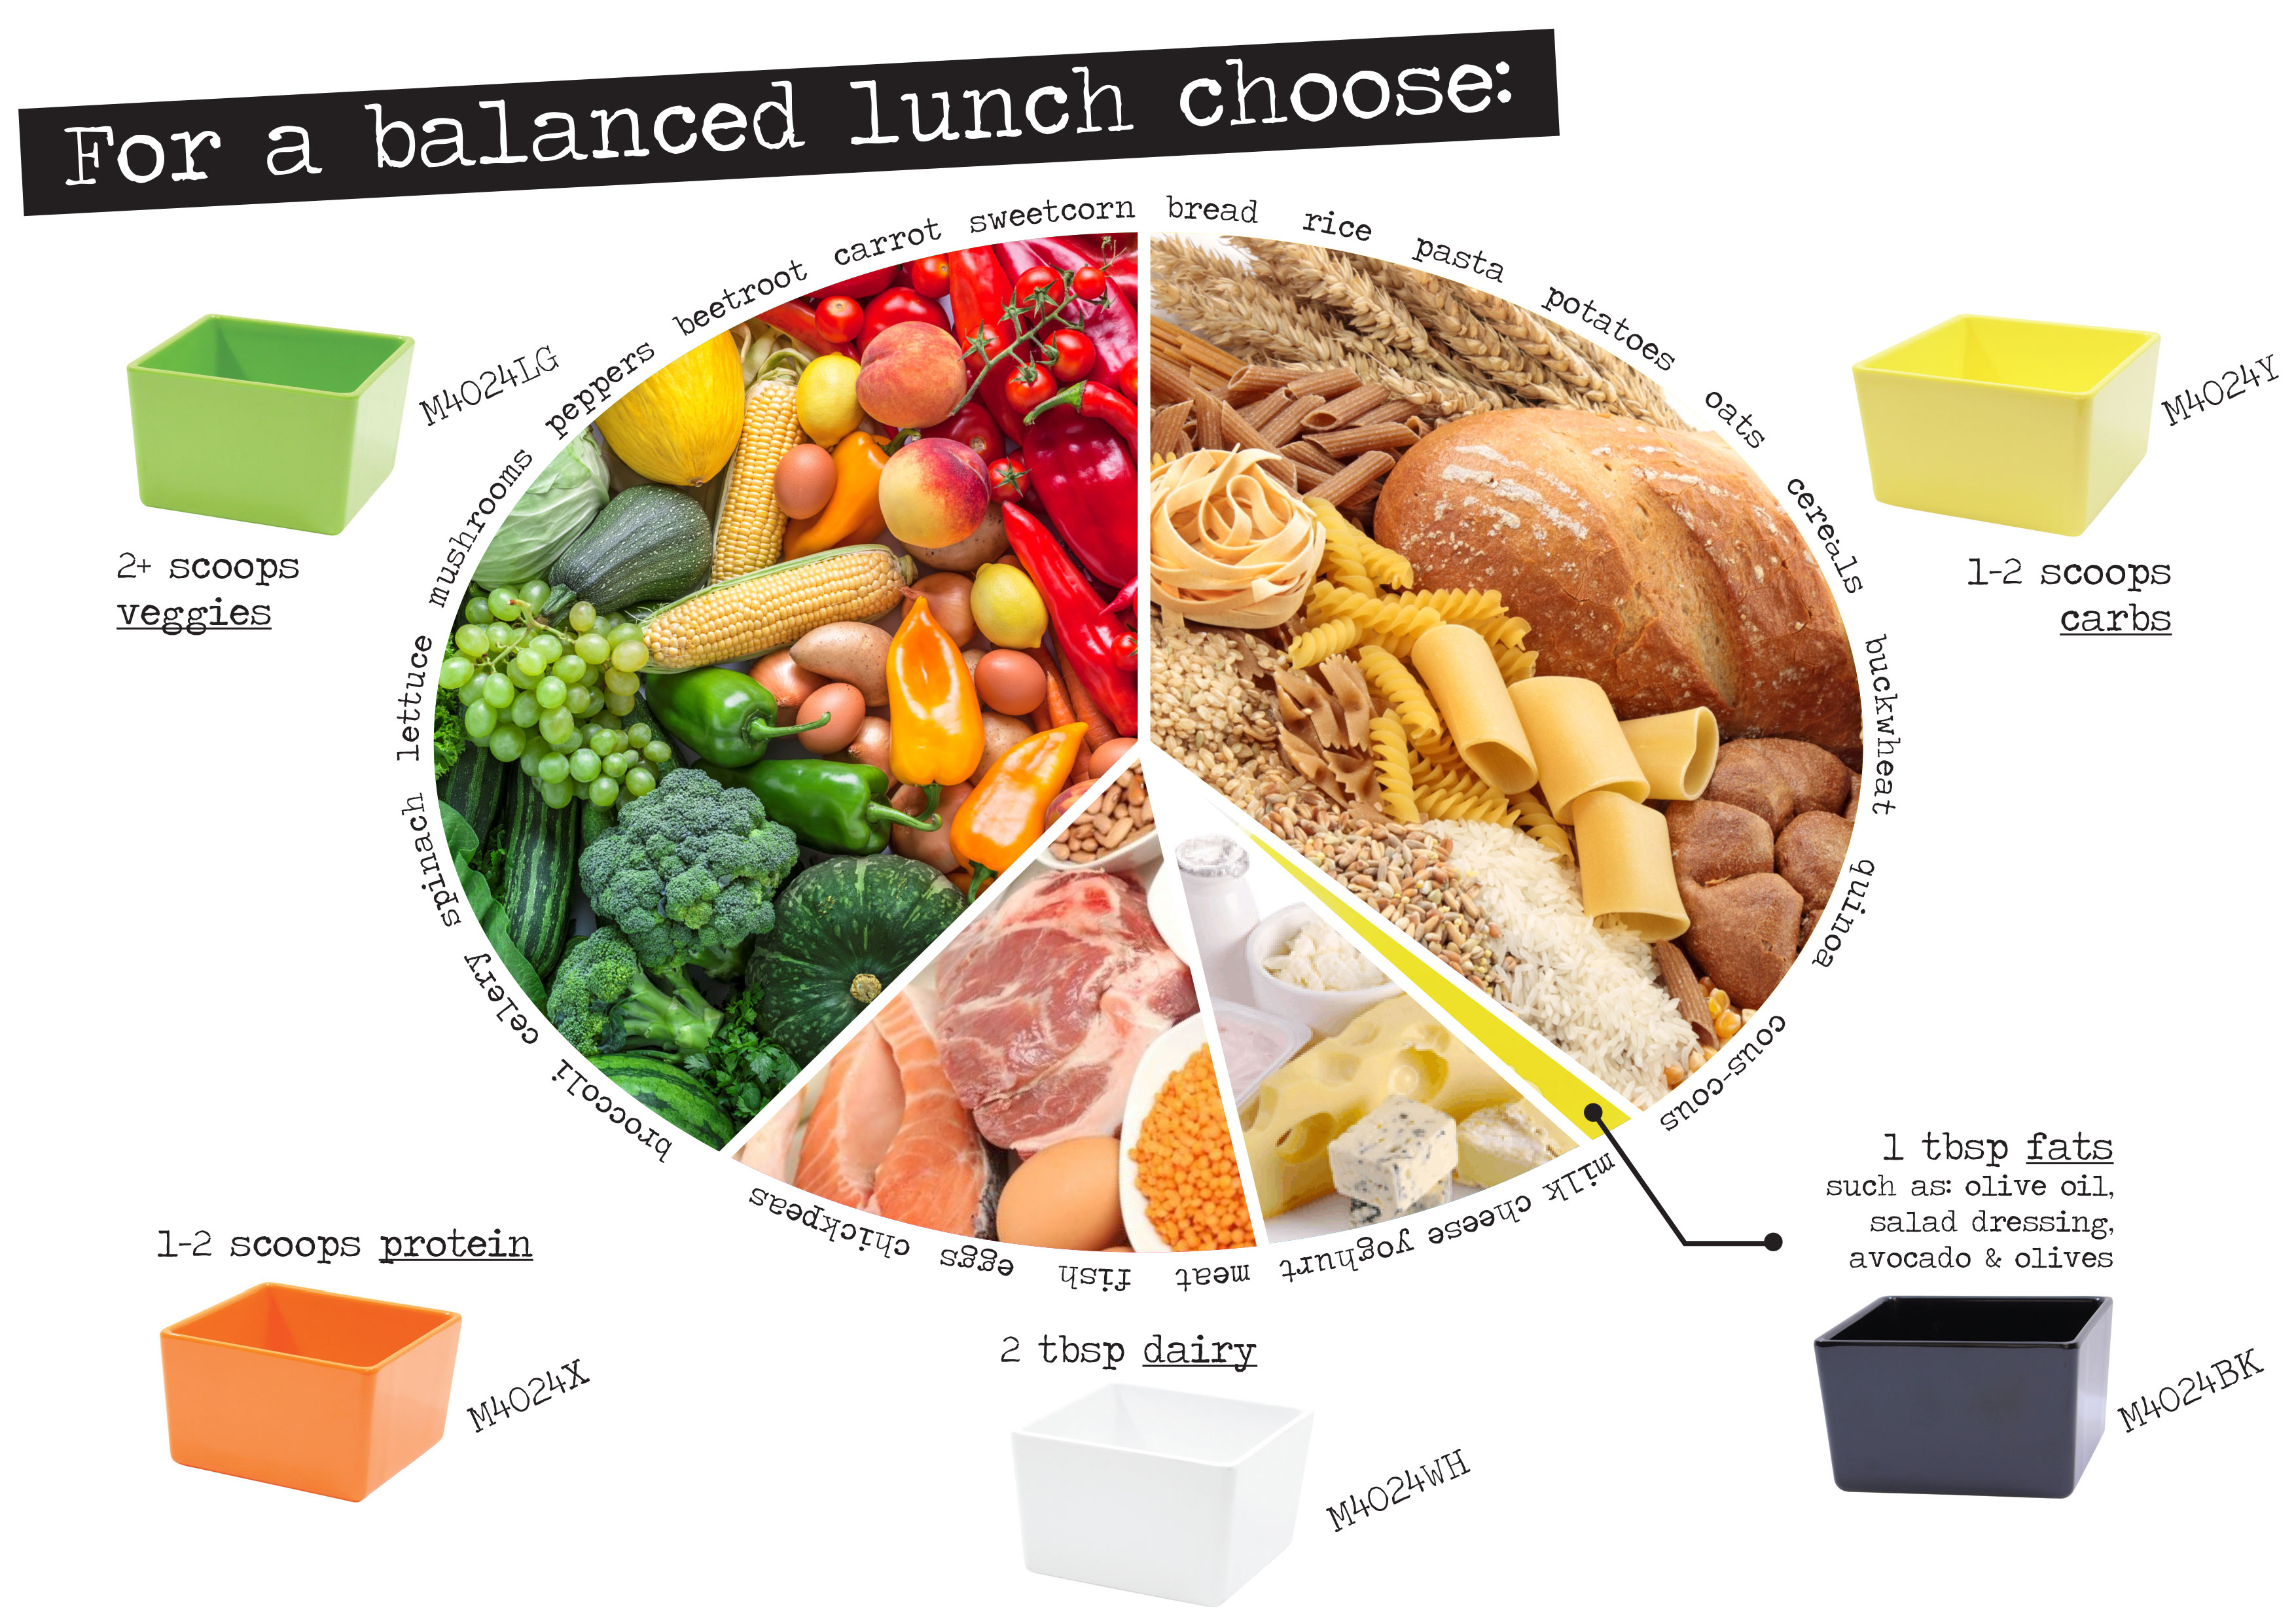 for a balanced lunch choose